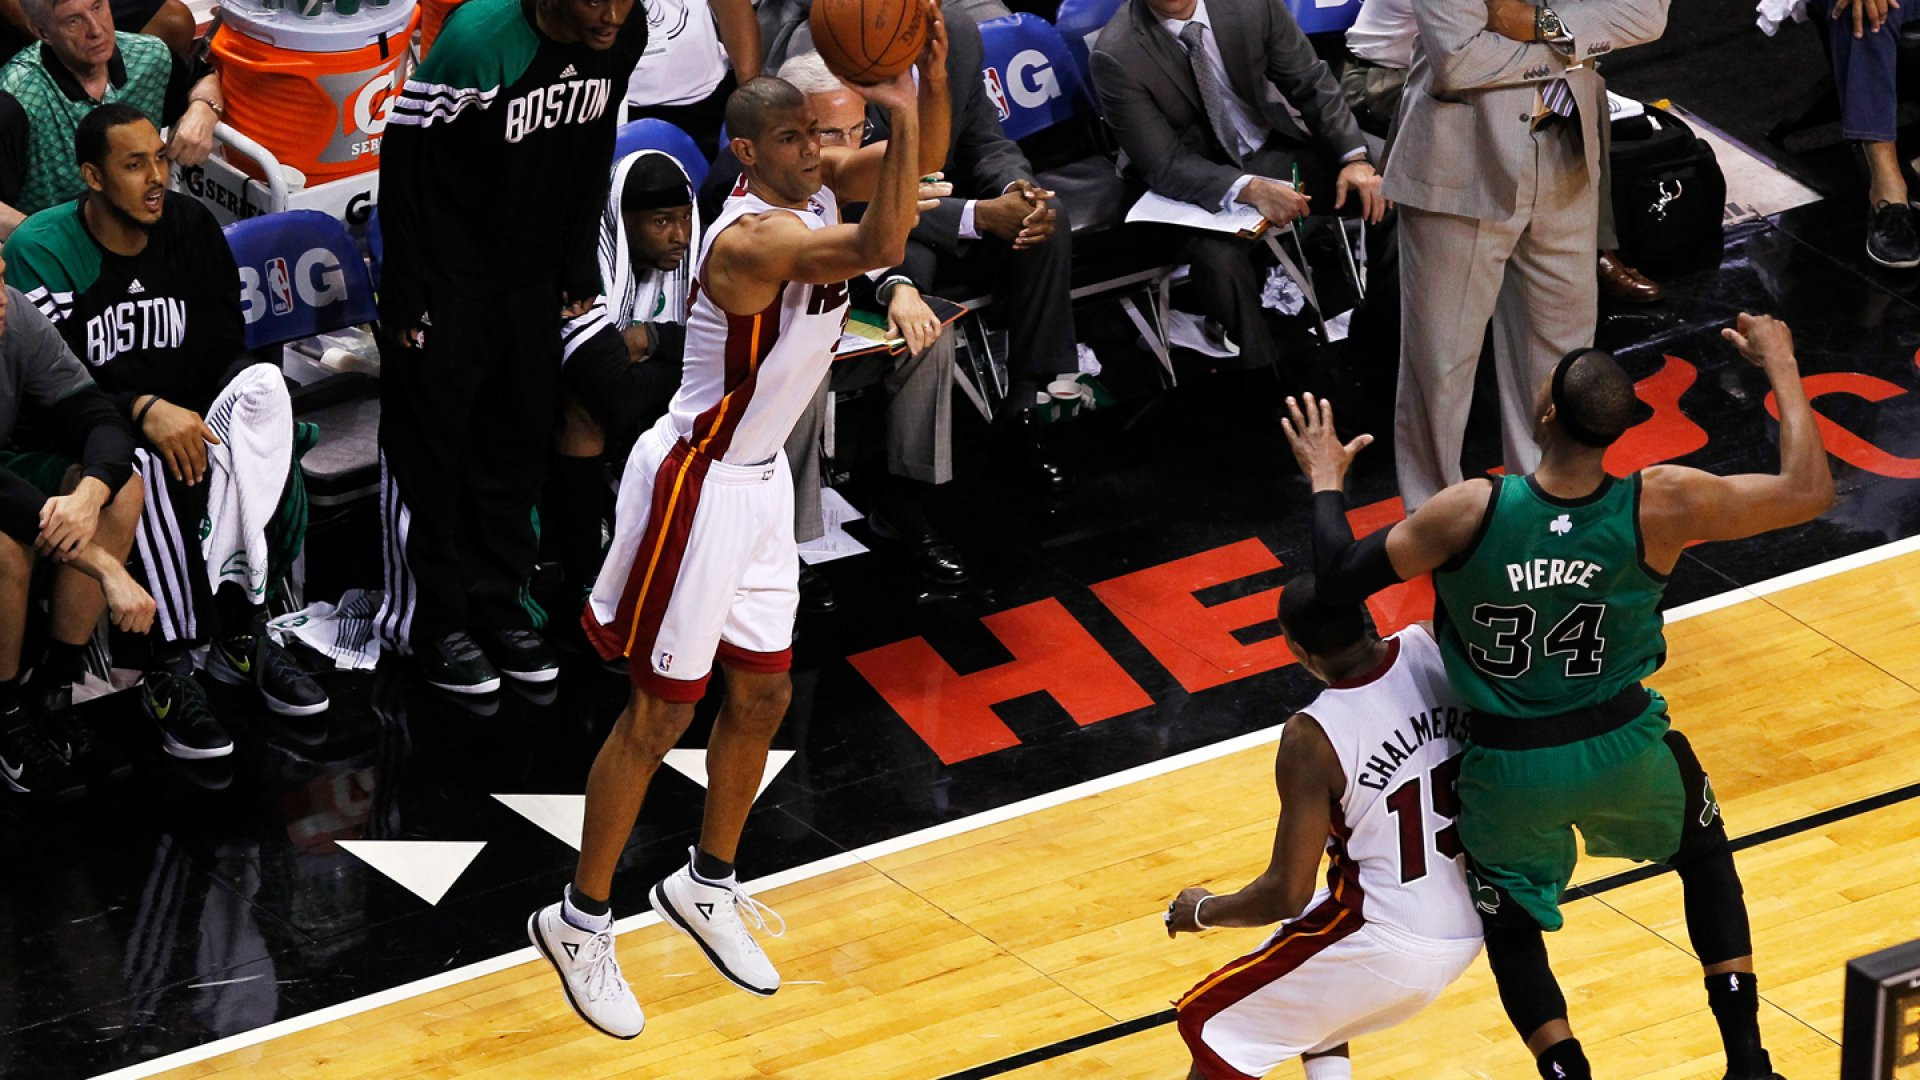 Shane Battier #31 of the Miami Heat attempts a 3-point shot against the Boston Celtics.